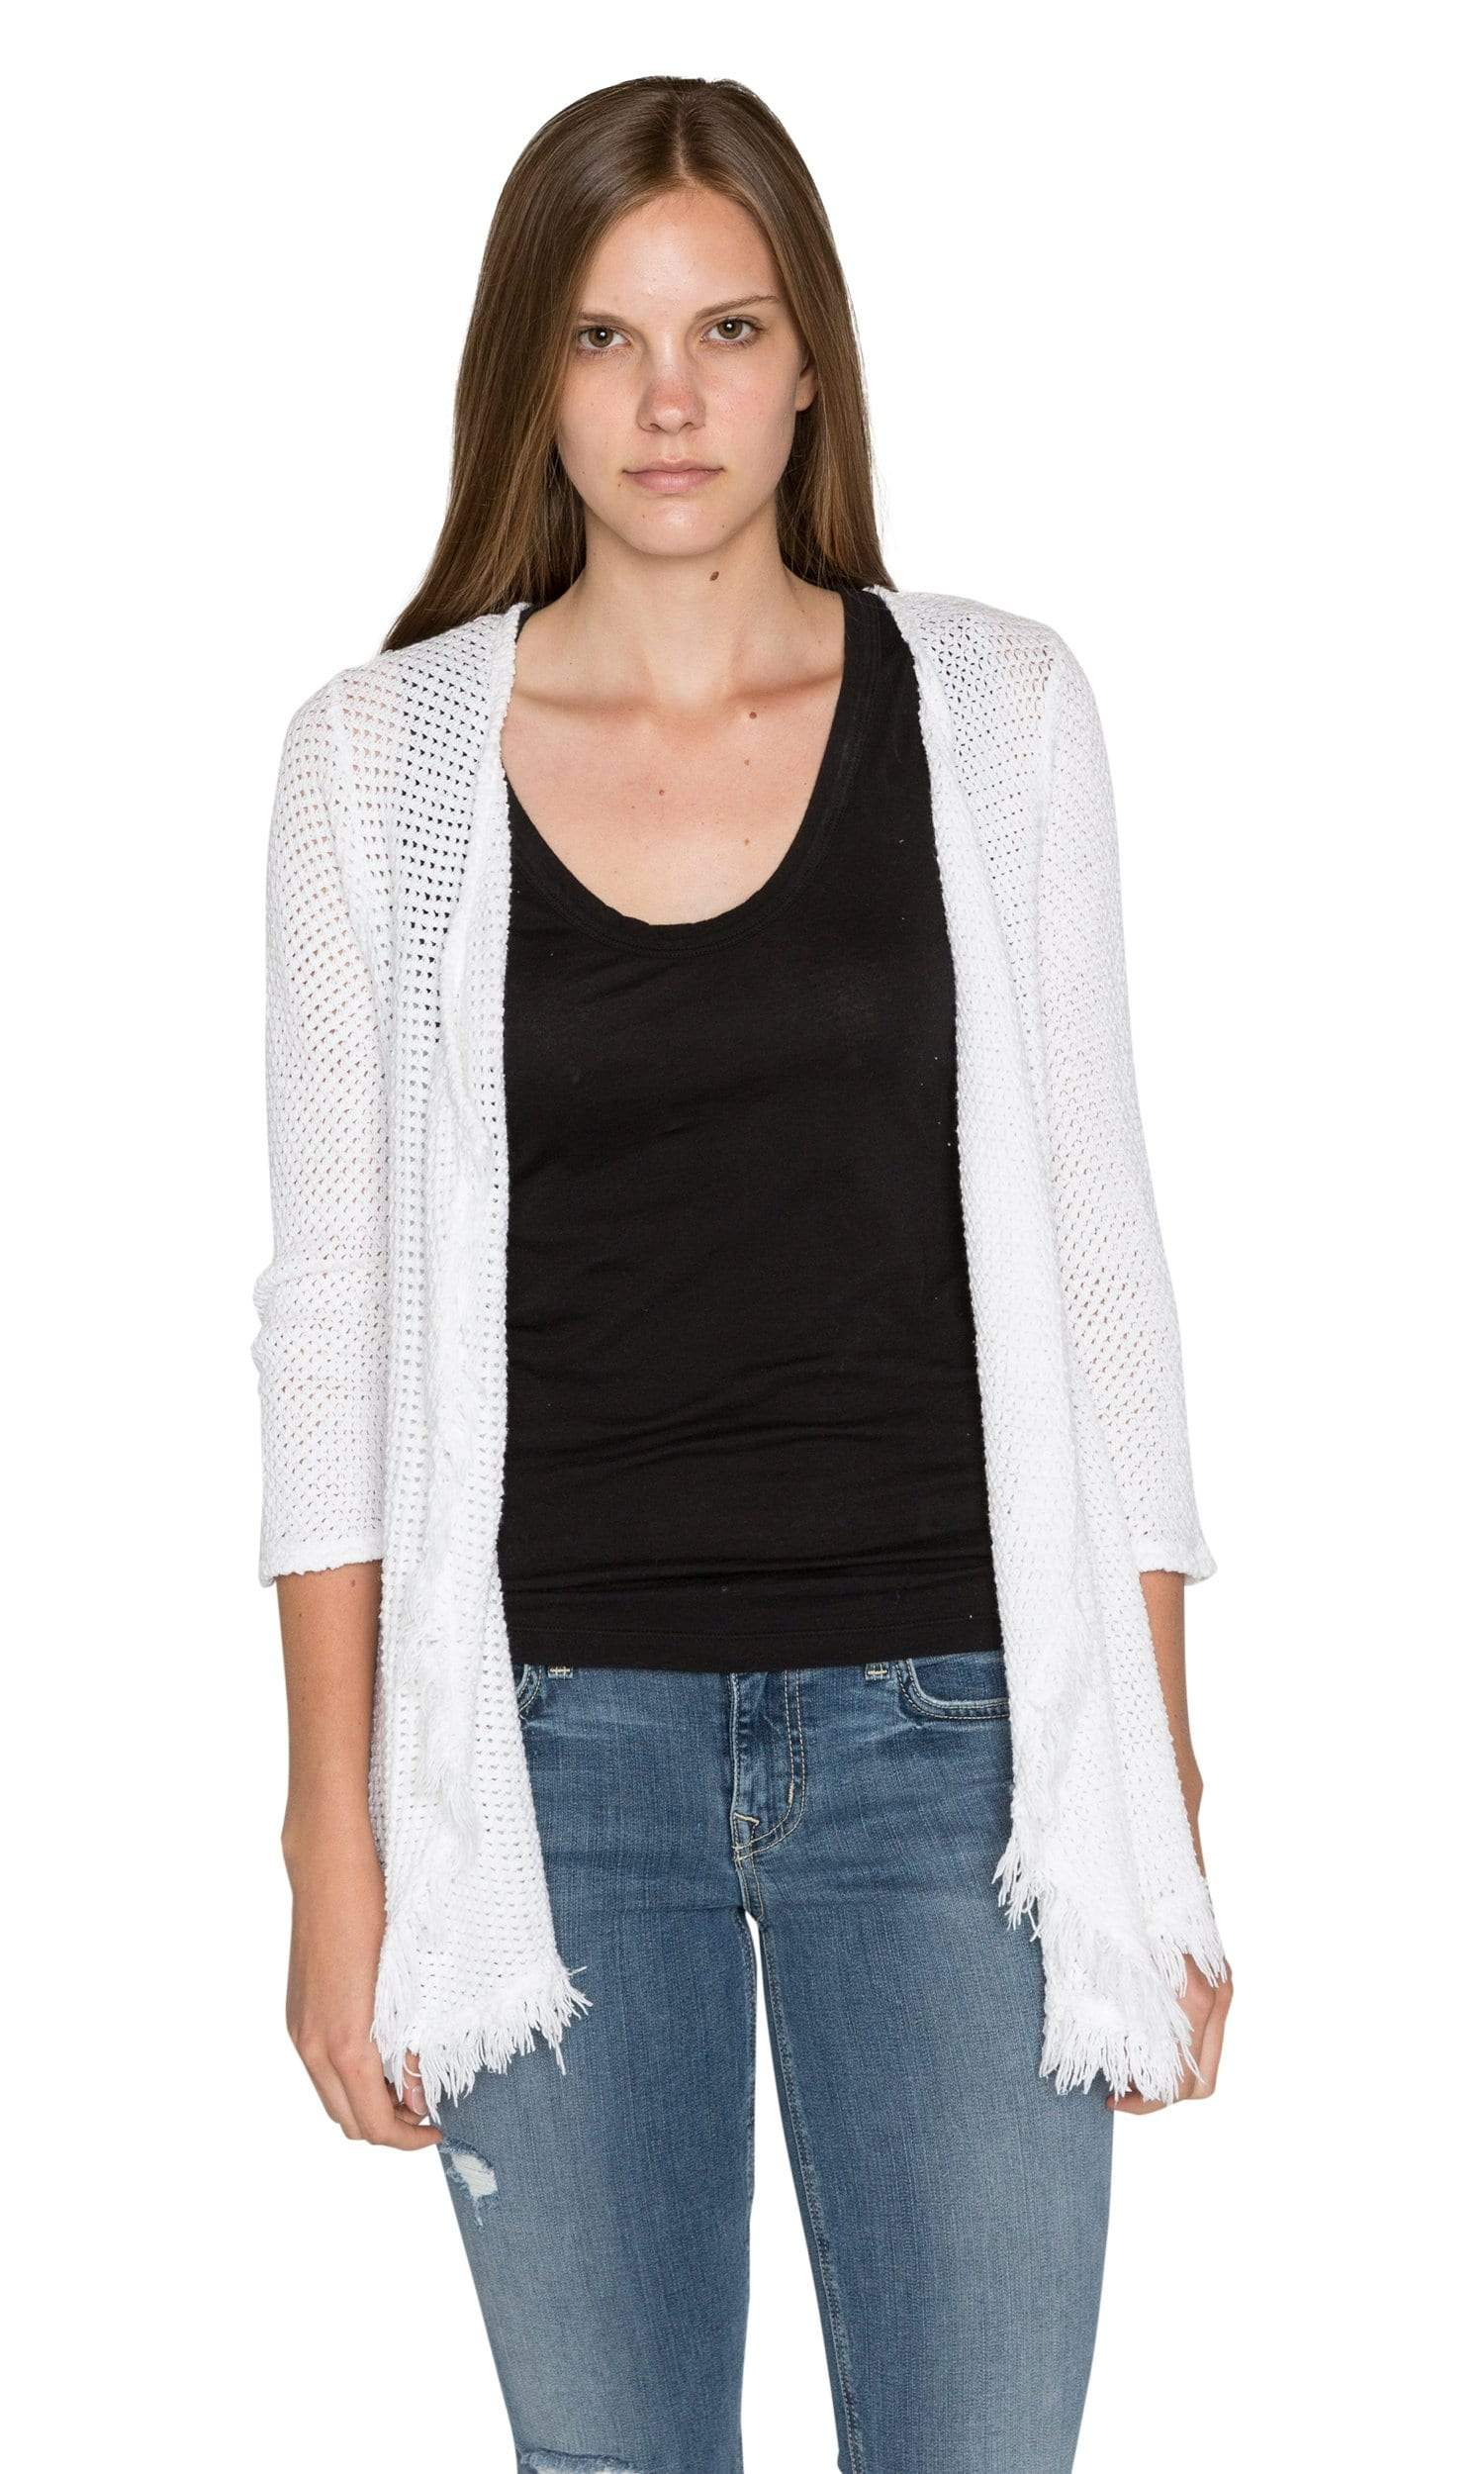 Velvet by Graham & Spencer Floran Crochet Knit Drape Cardigan